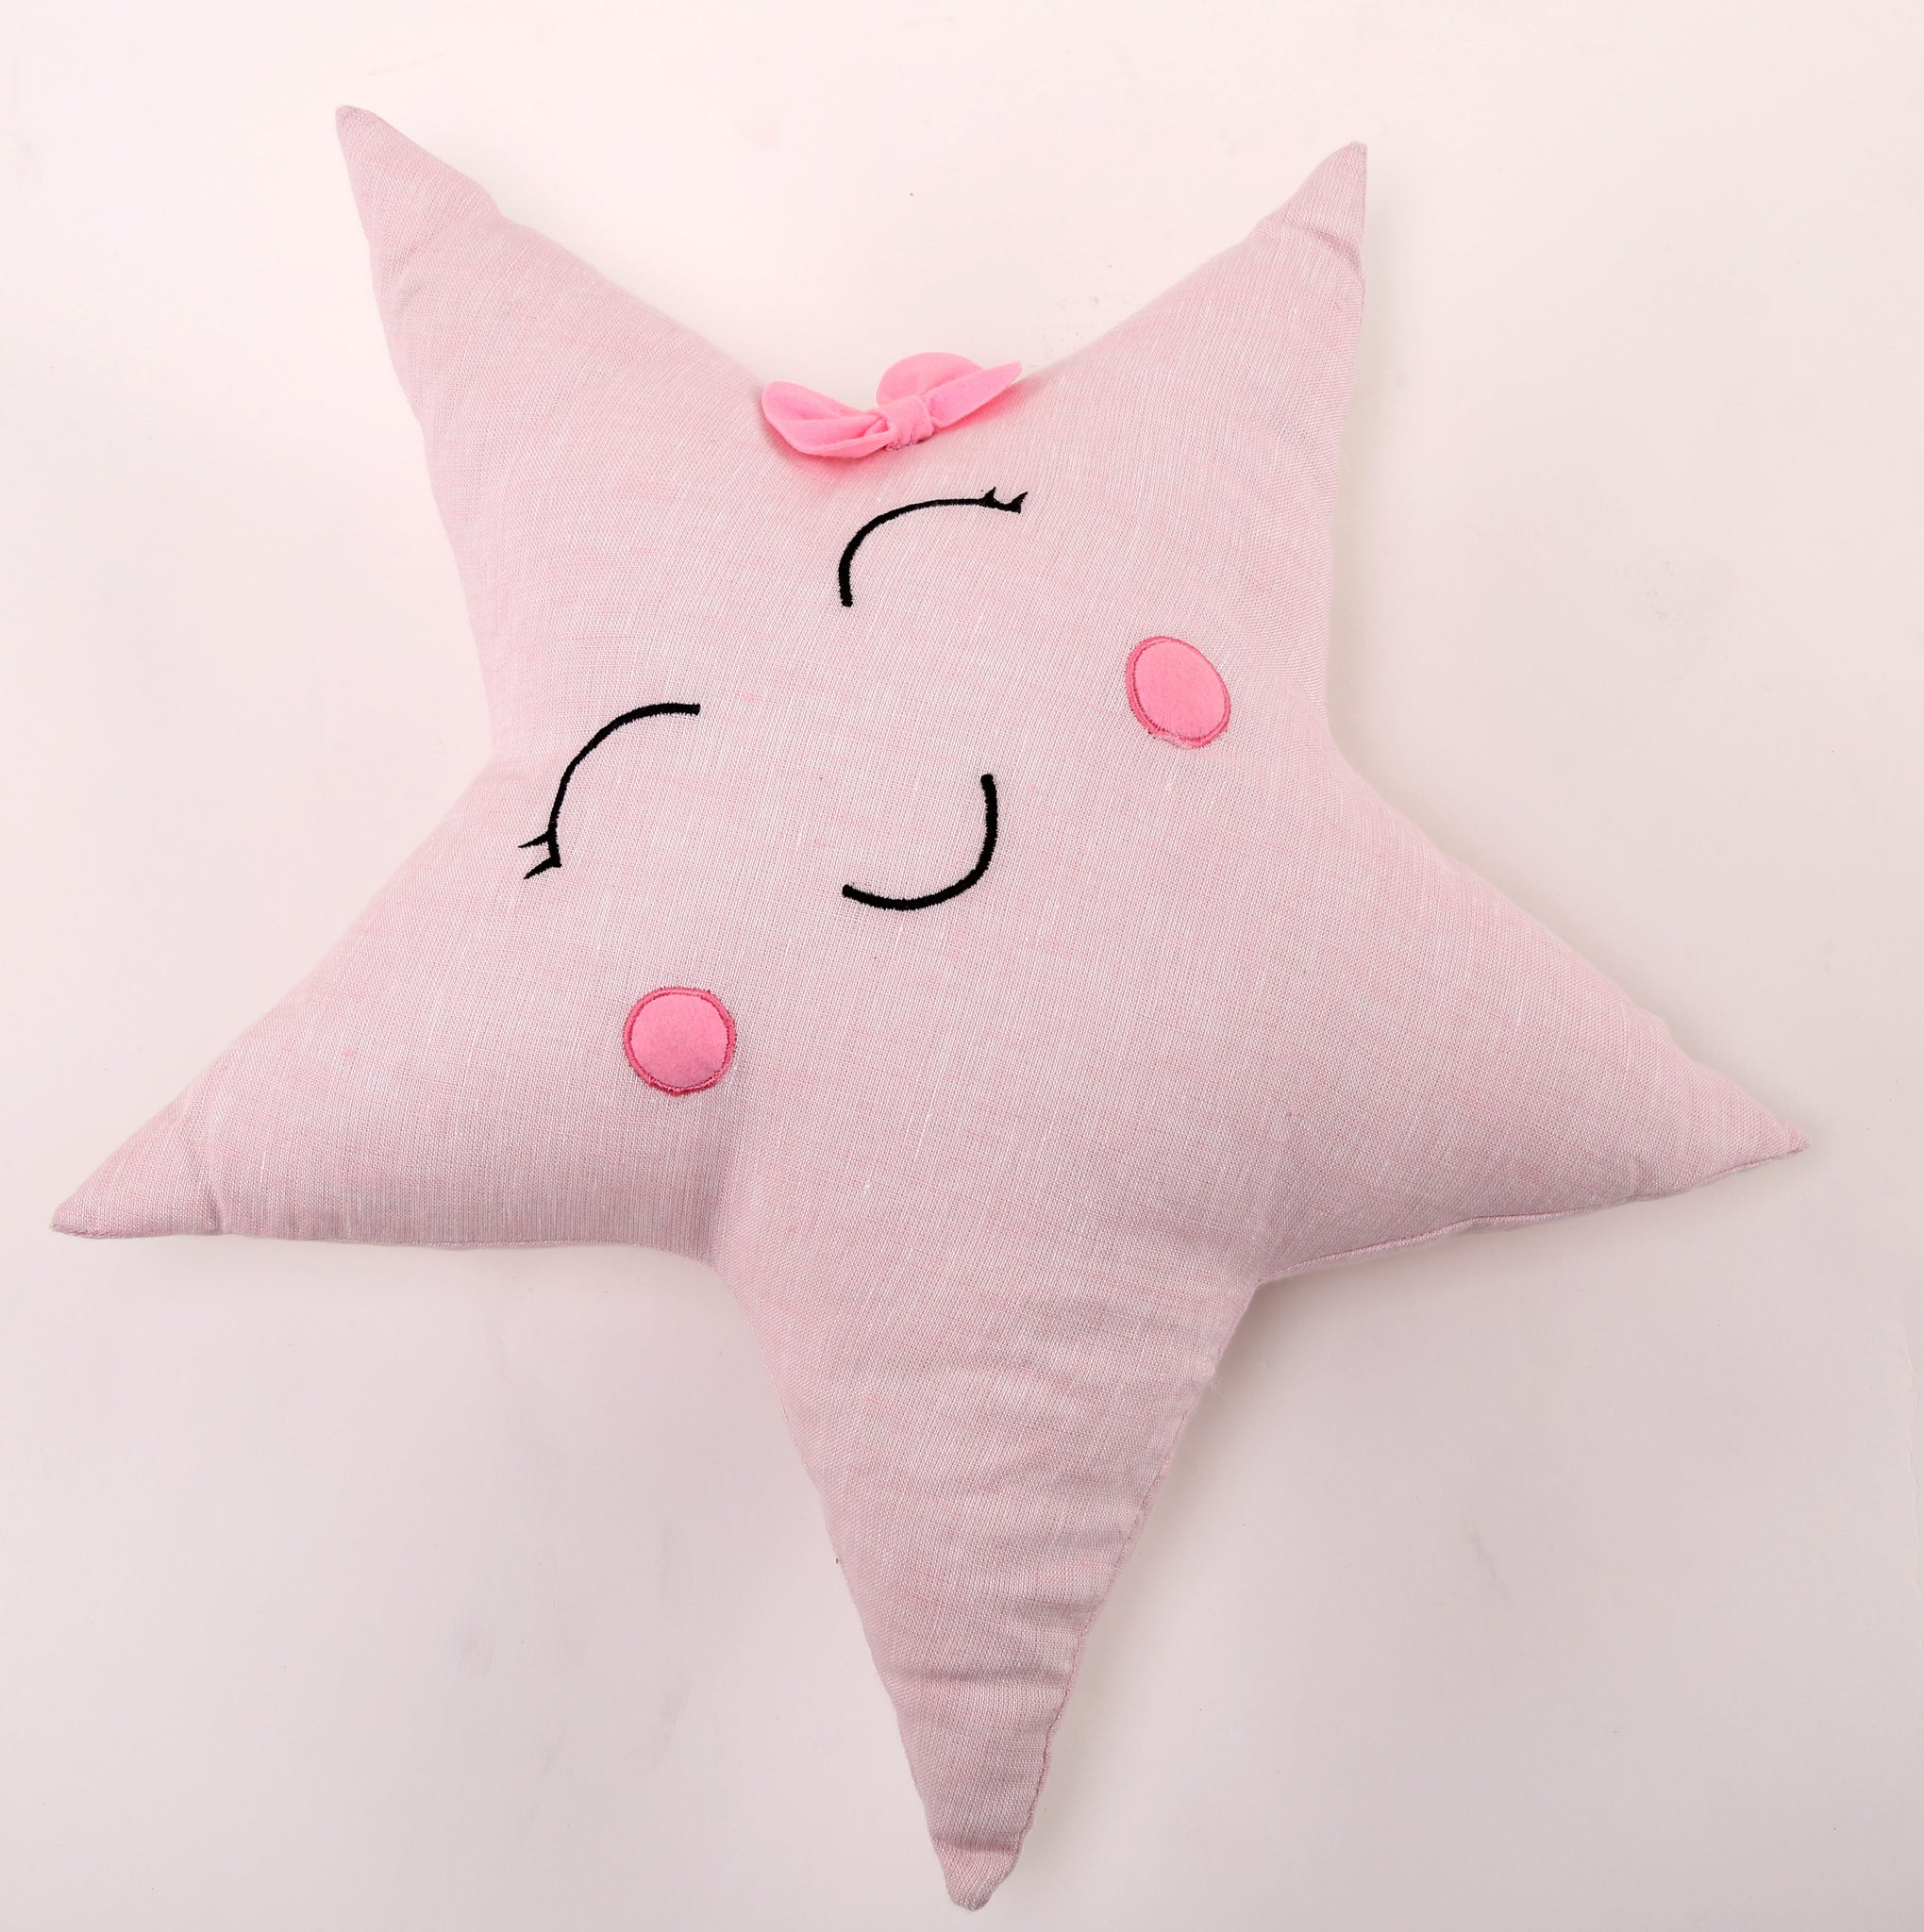 Star With A Bow Shaped Cushion